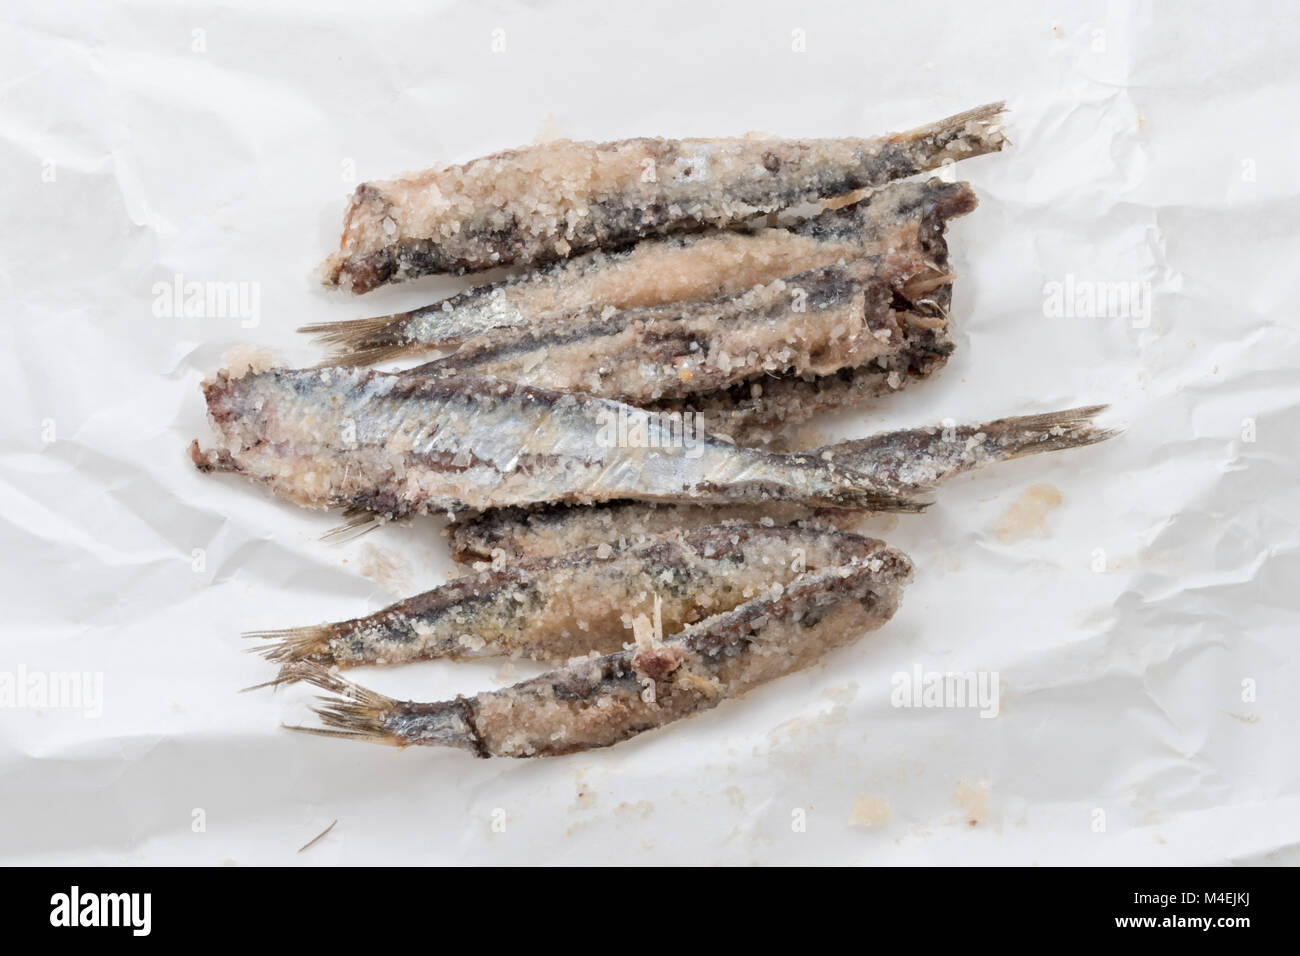 sardines salted anchovies on paper 2 - Stock Image